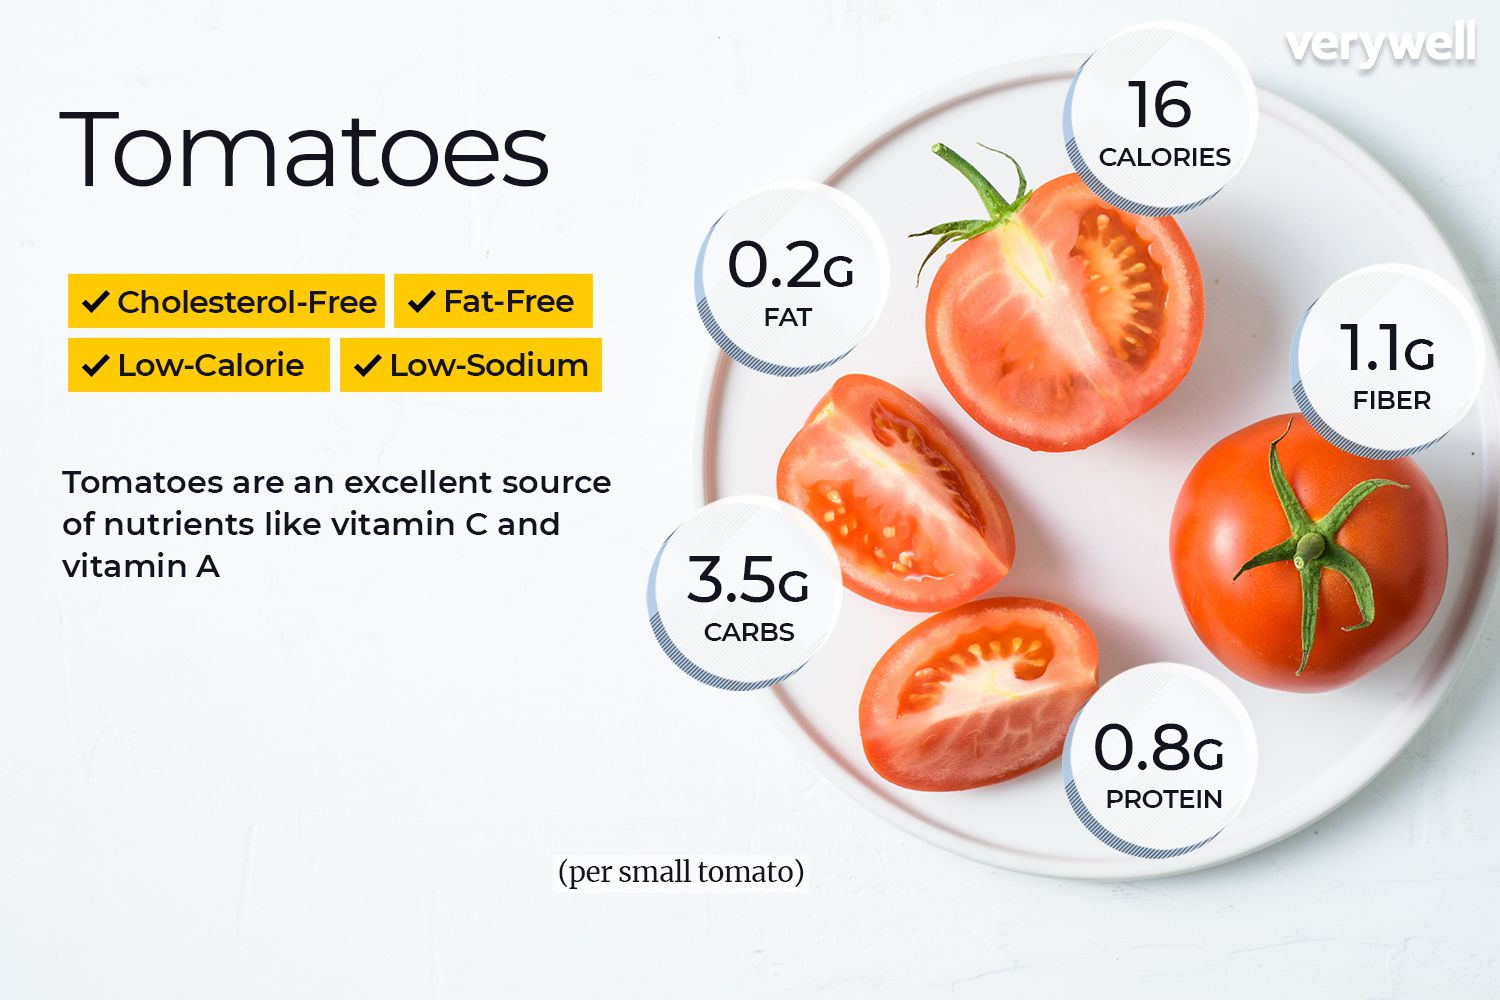 can you eat tomatoes on wild diet